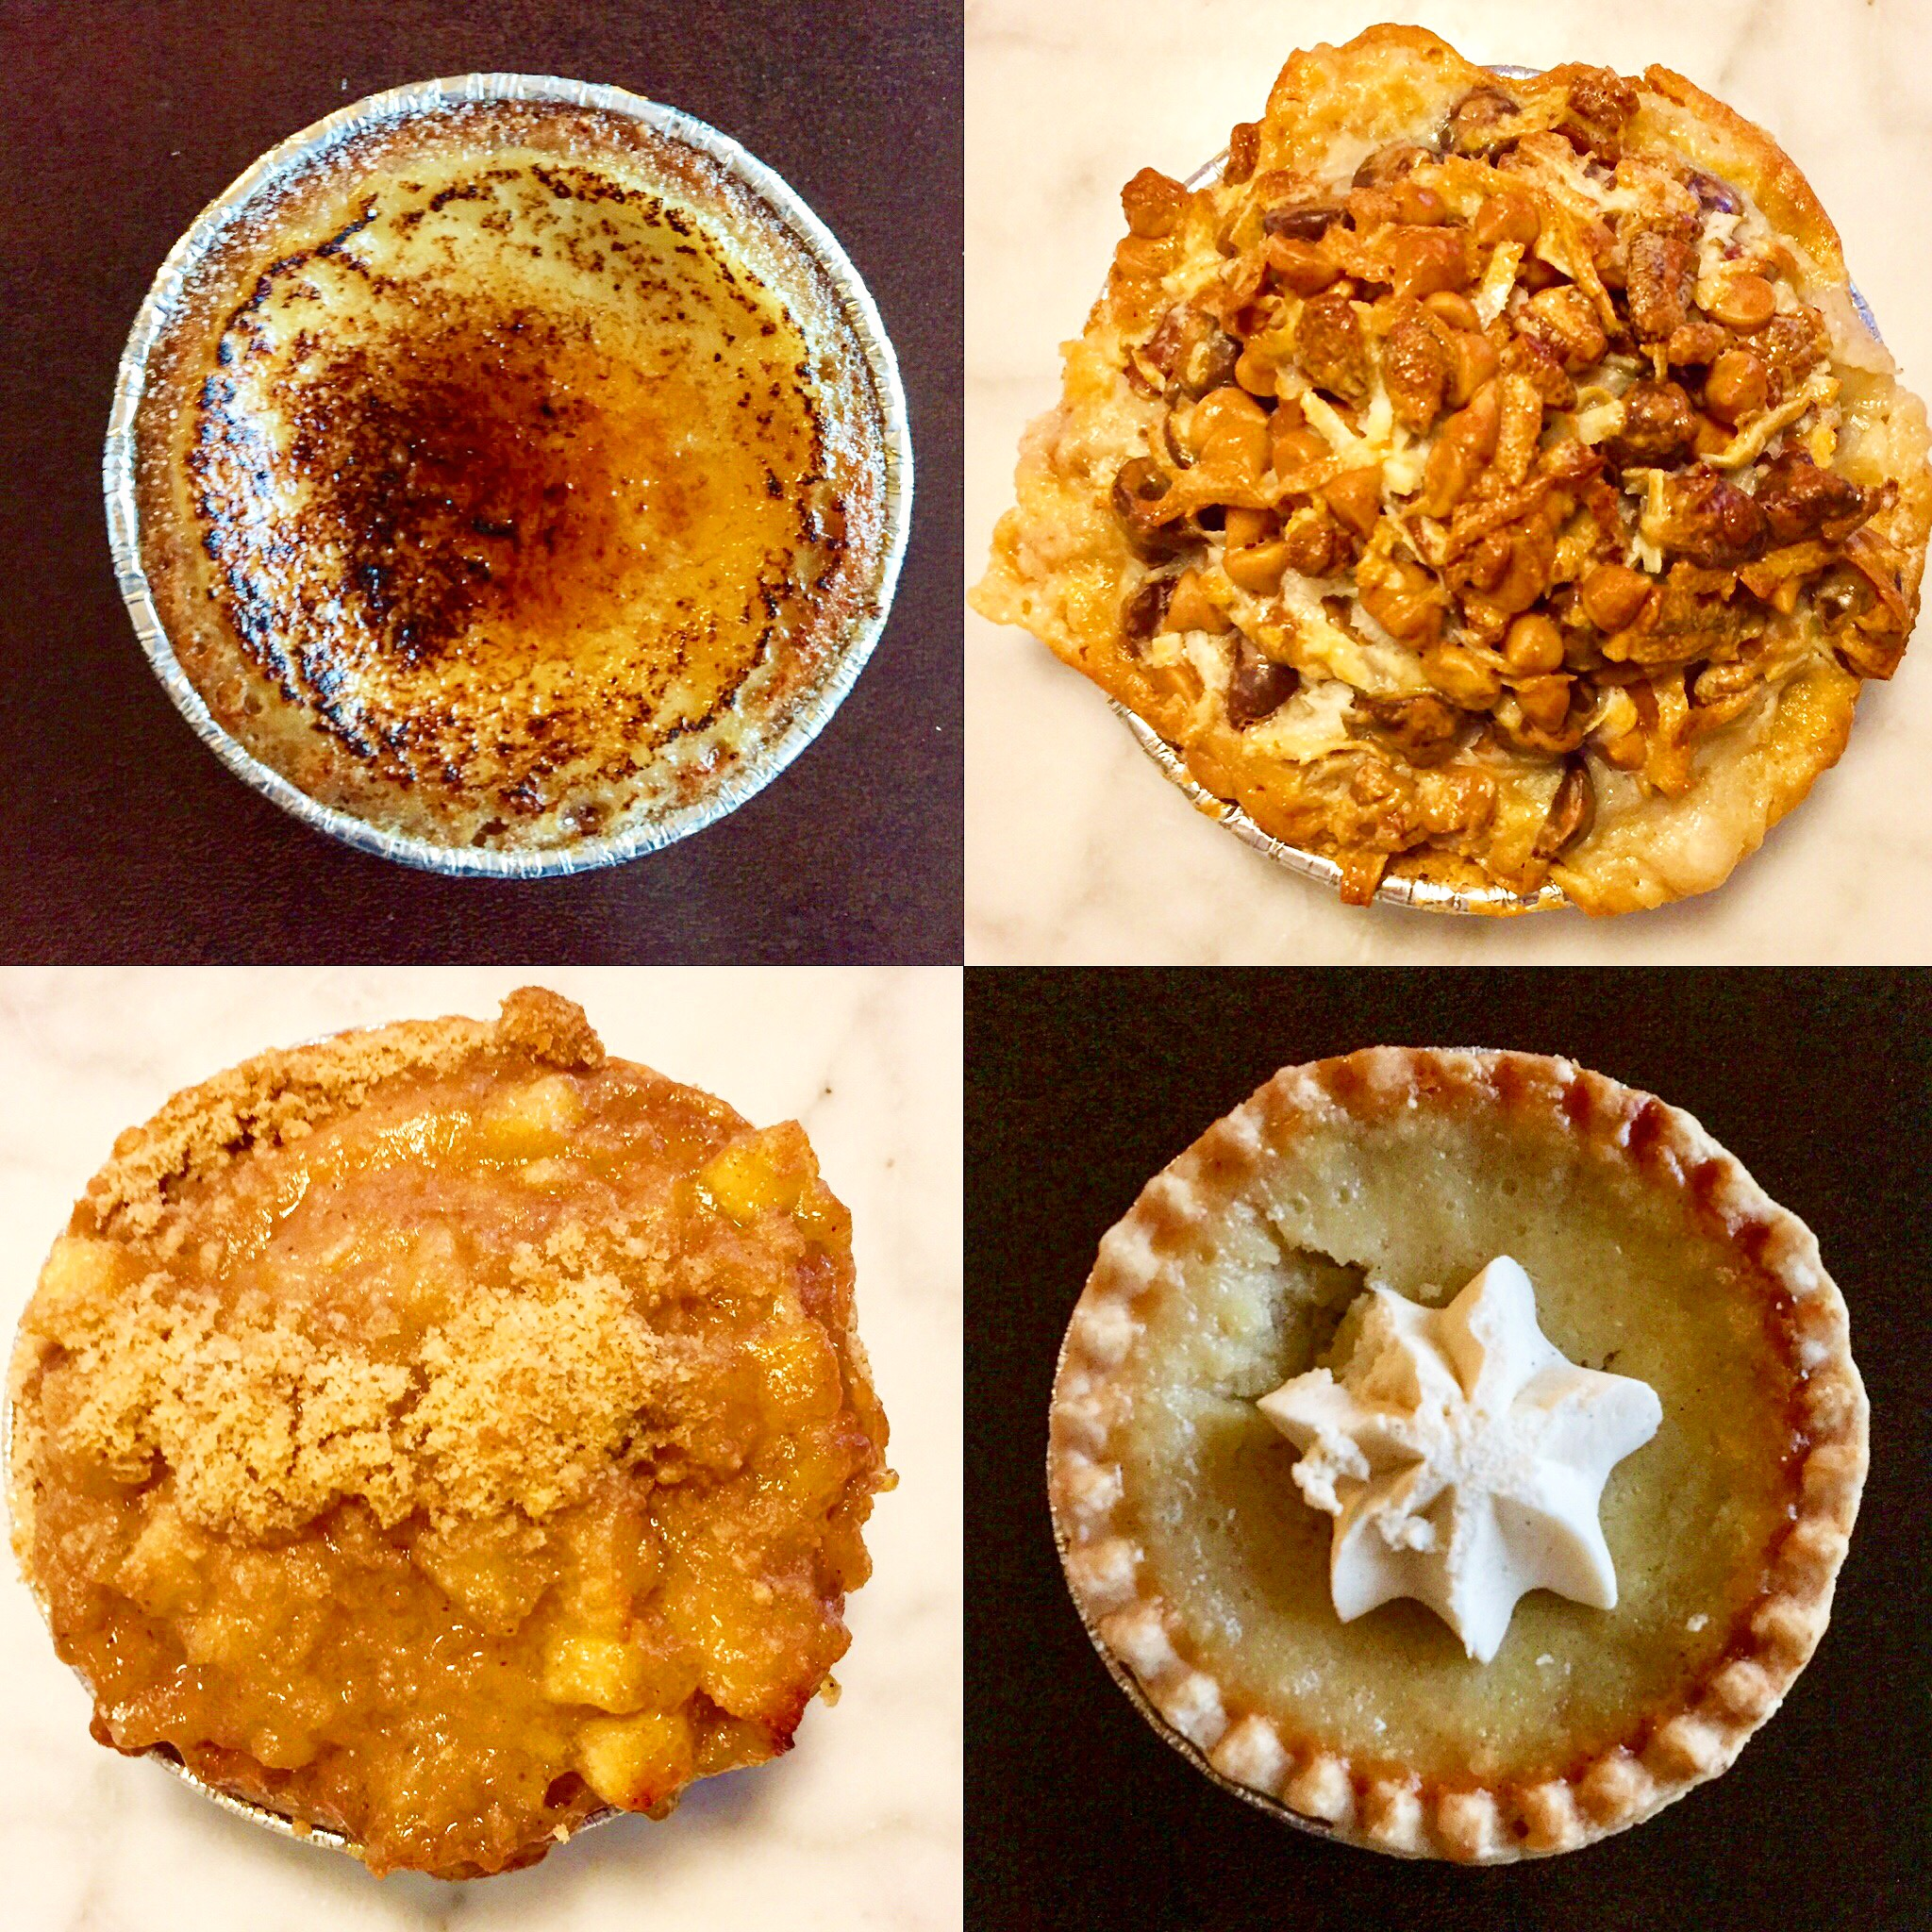 Pies, pies, and more pies!  Creme brulee, cowboy, whiskey buttermilk, and apple crumb.